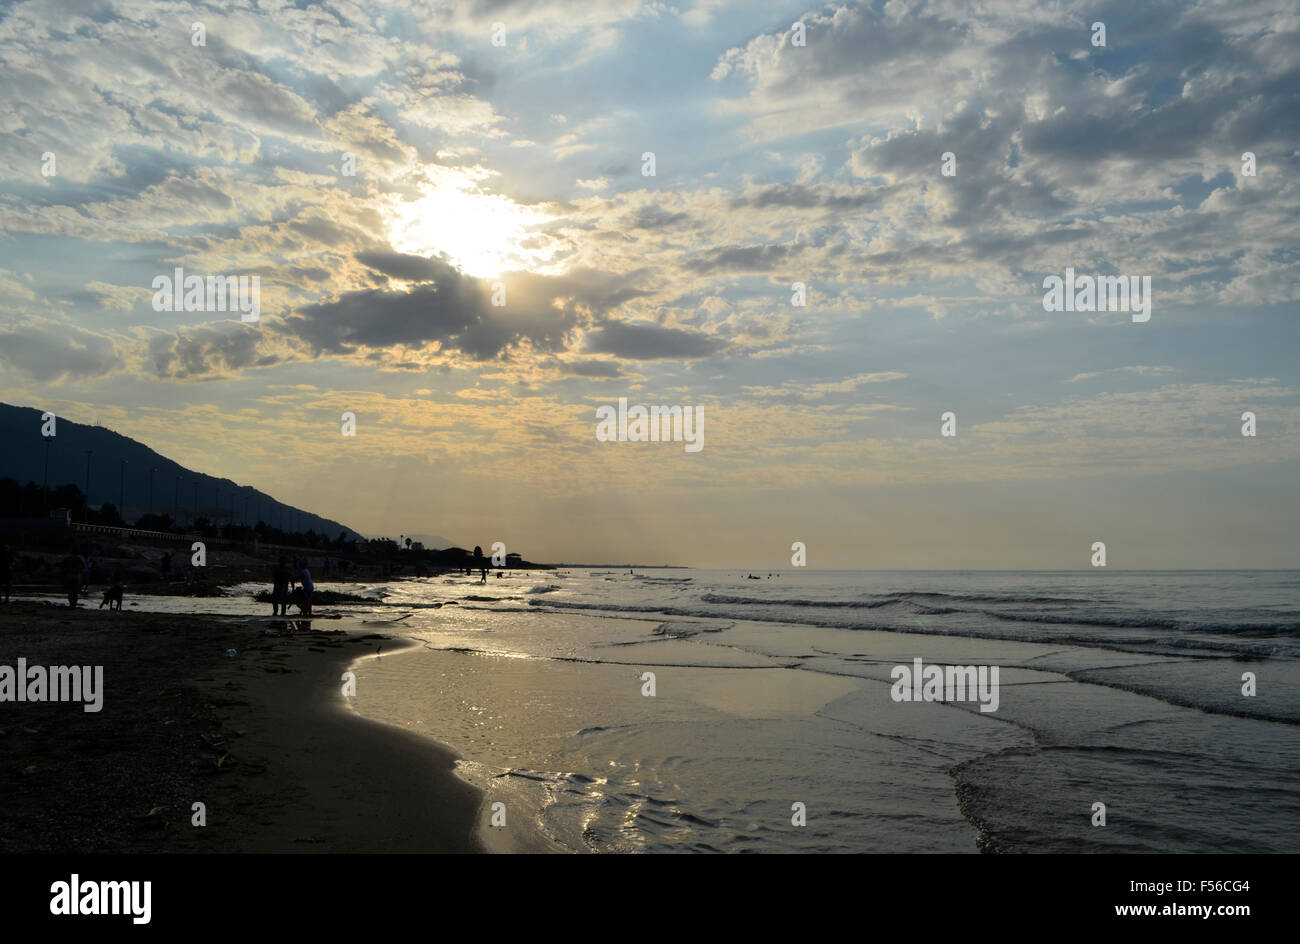 Sunshine on Caspian sea with clouds in the sky - Stock Image